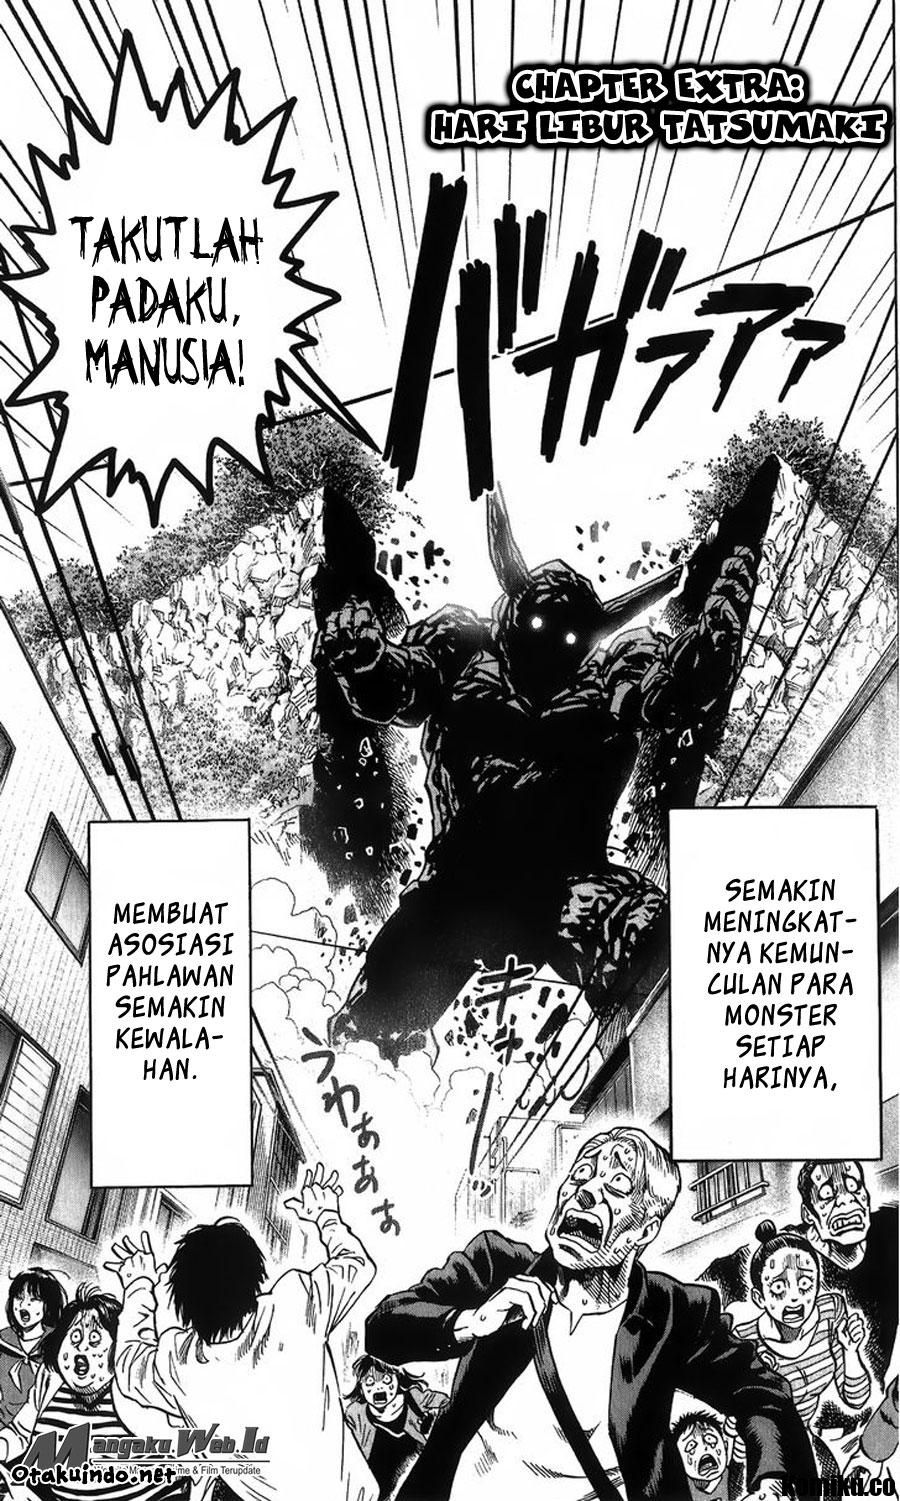 Baca Manga One Punch Man : manga, punch, Download, Volume, Komik, Punch, Indonesia, Manga, Batch, Manga,